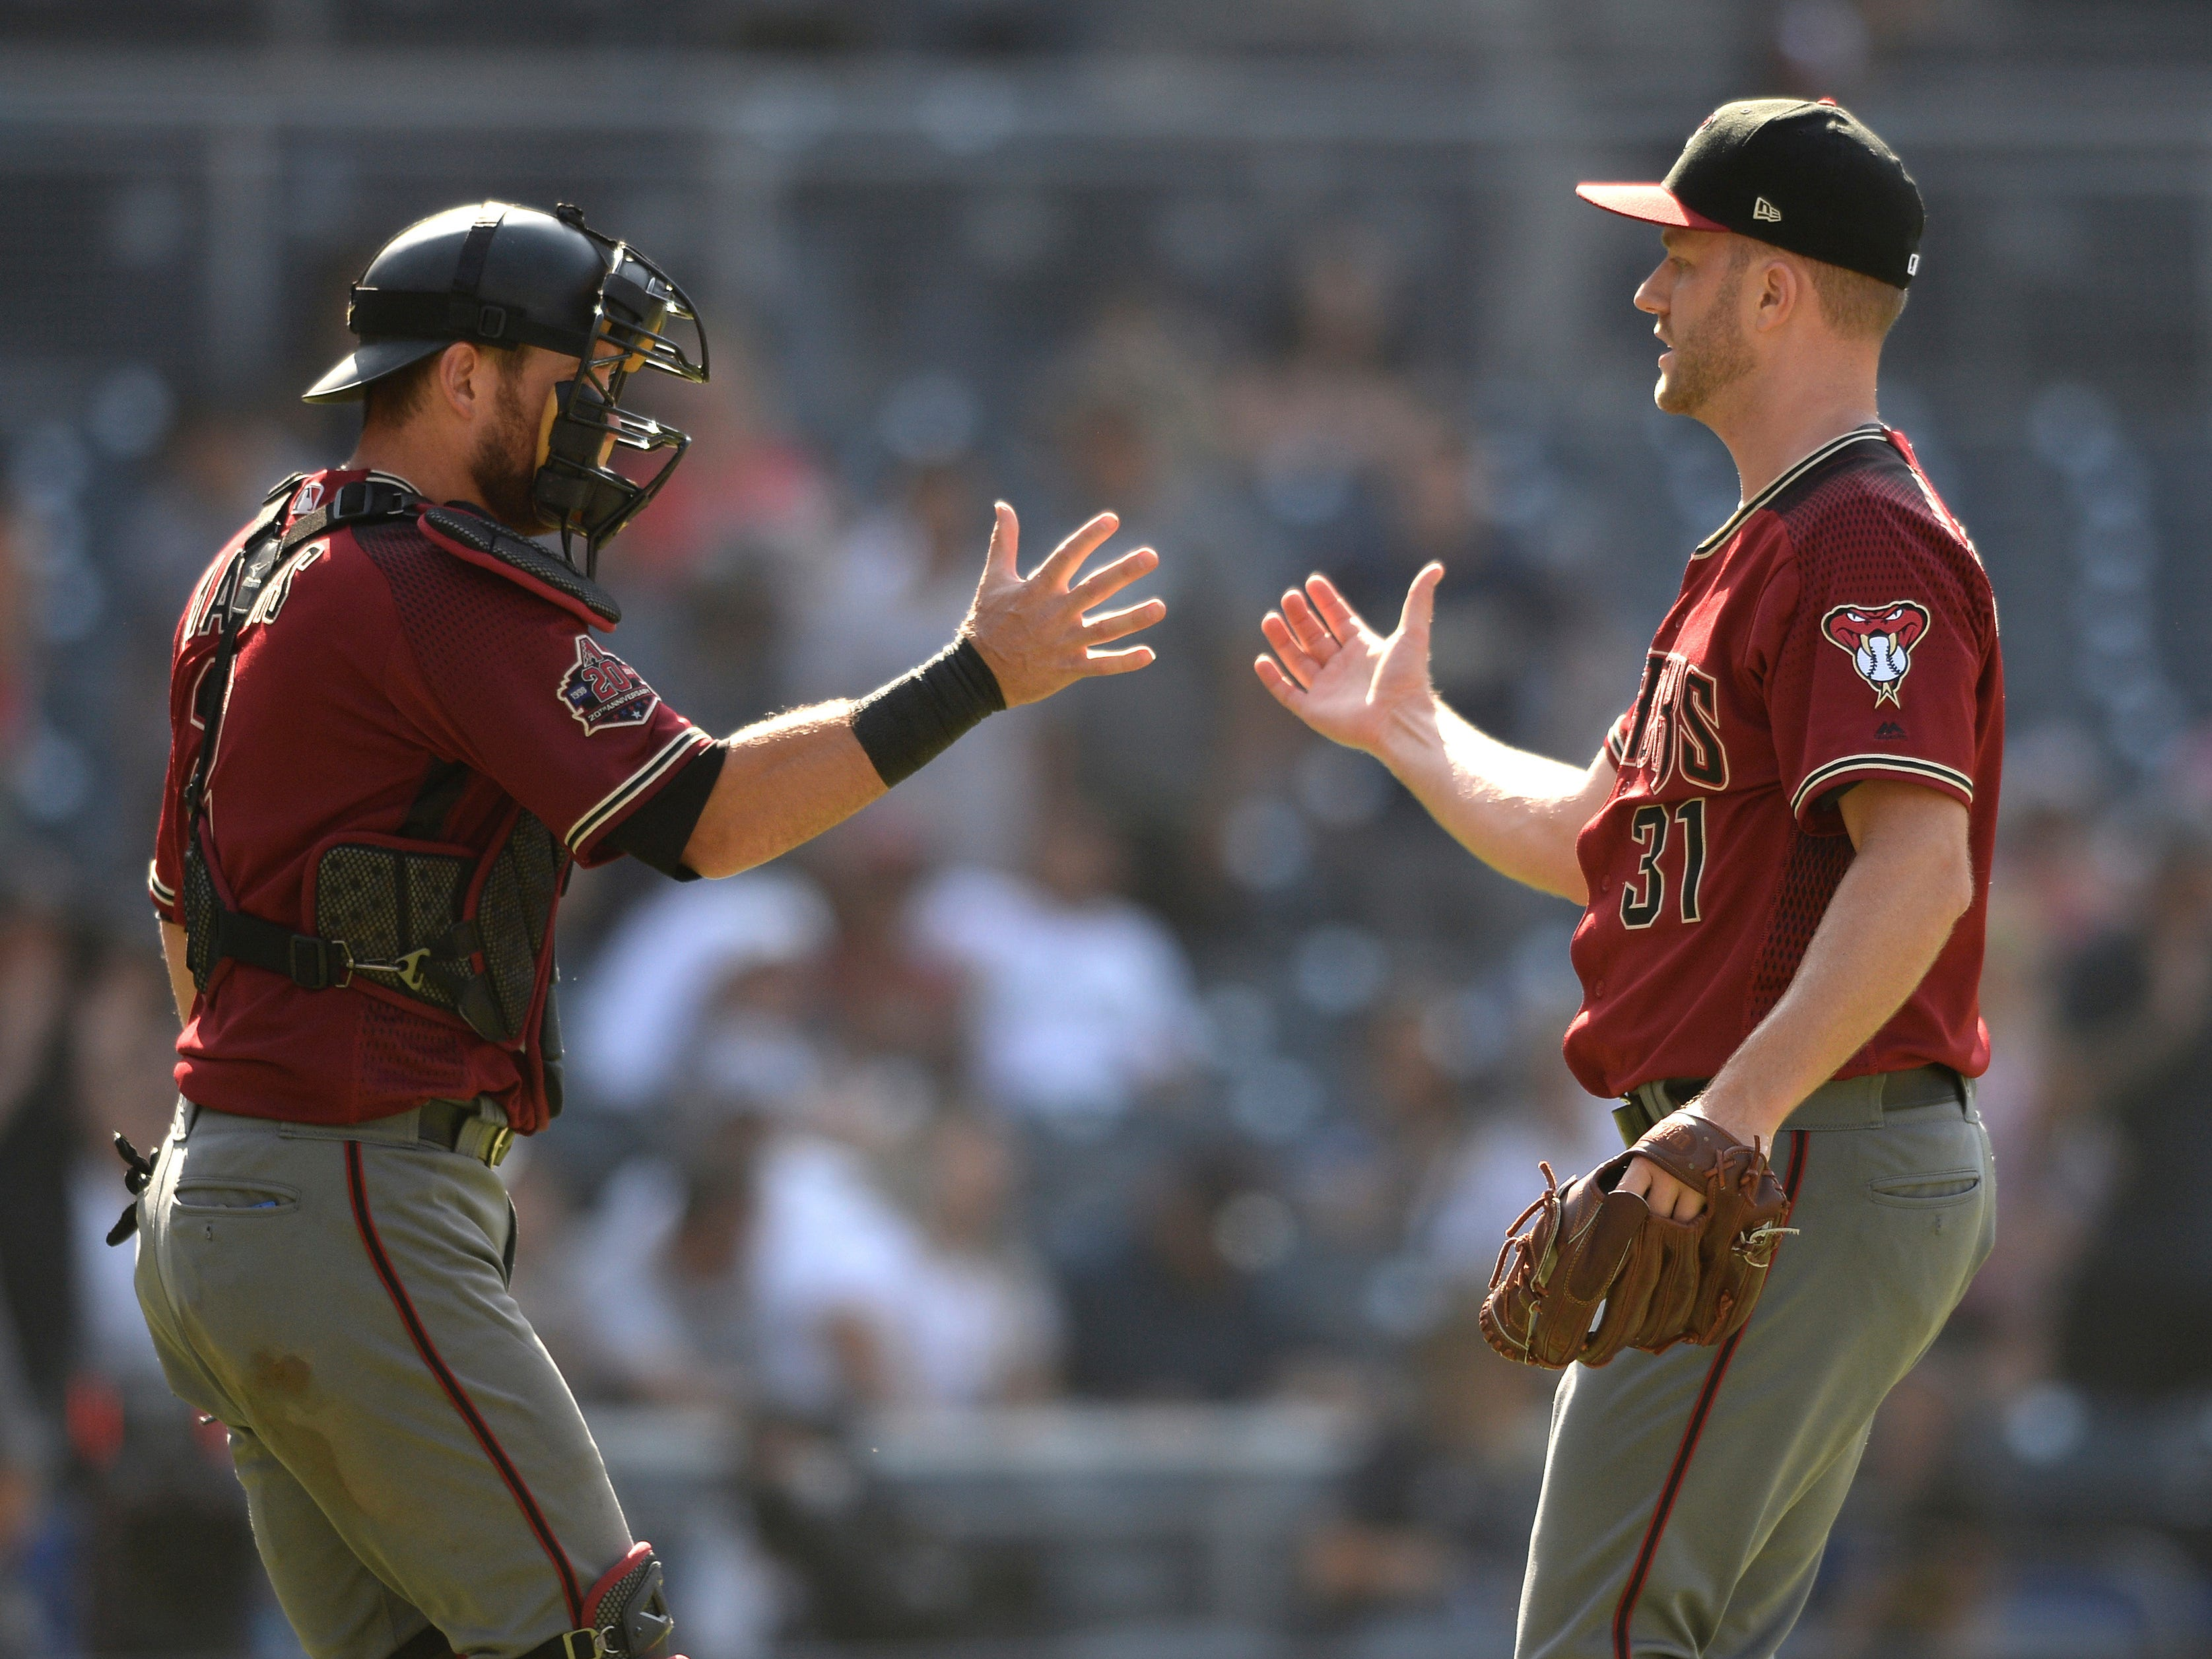 Arizona Diamondbacks' Brad Boxberger, right, and Jeff Mathis celebrate after recording the last out of a baseball game against the San Diego Padres, Sunday, Aug. 19, 2018, in San Diego. (AP Photo/Orlando Ramirez)